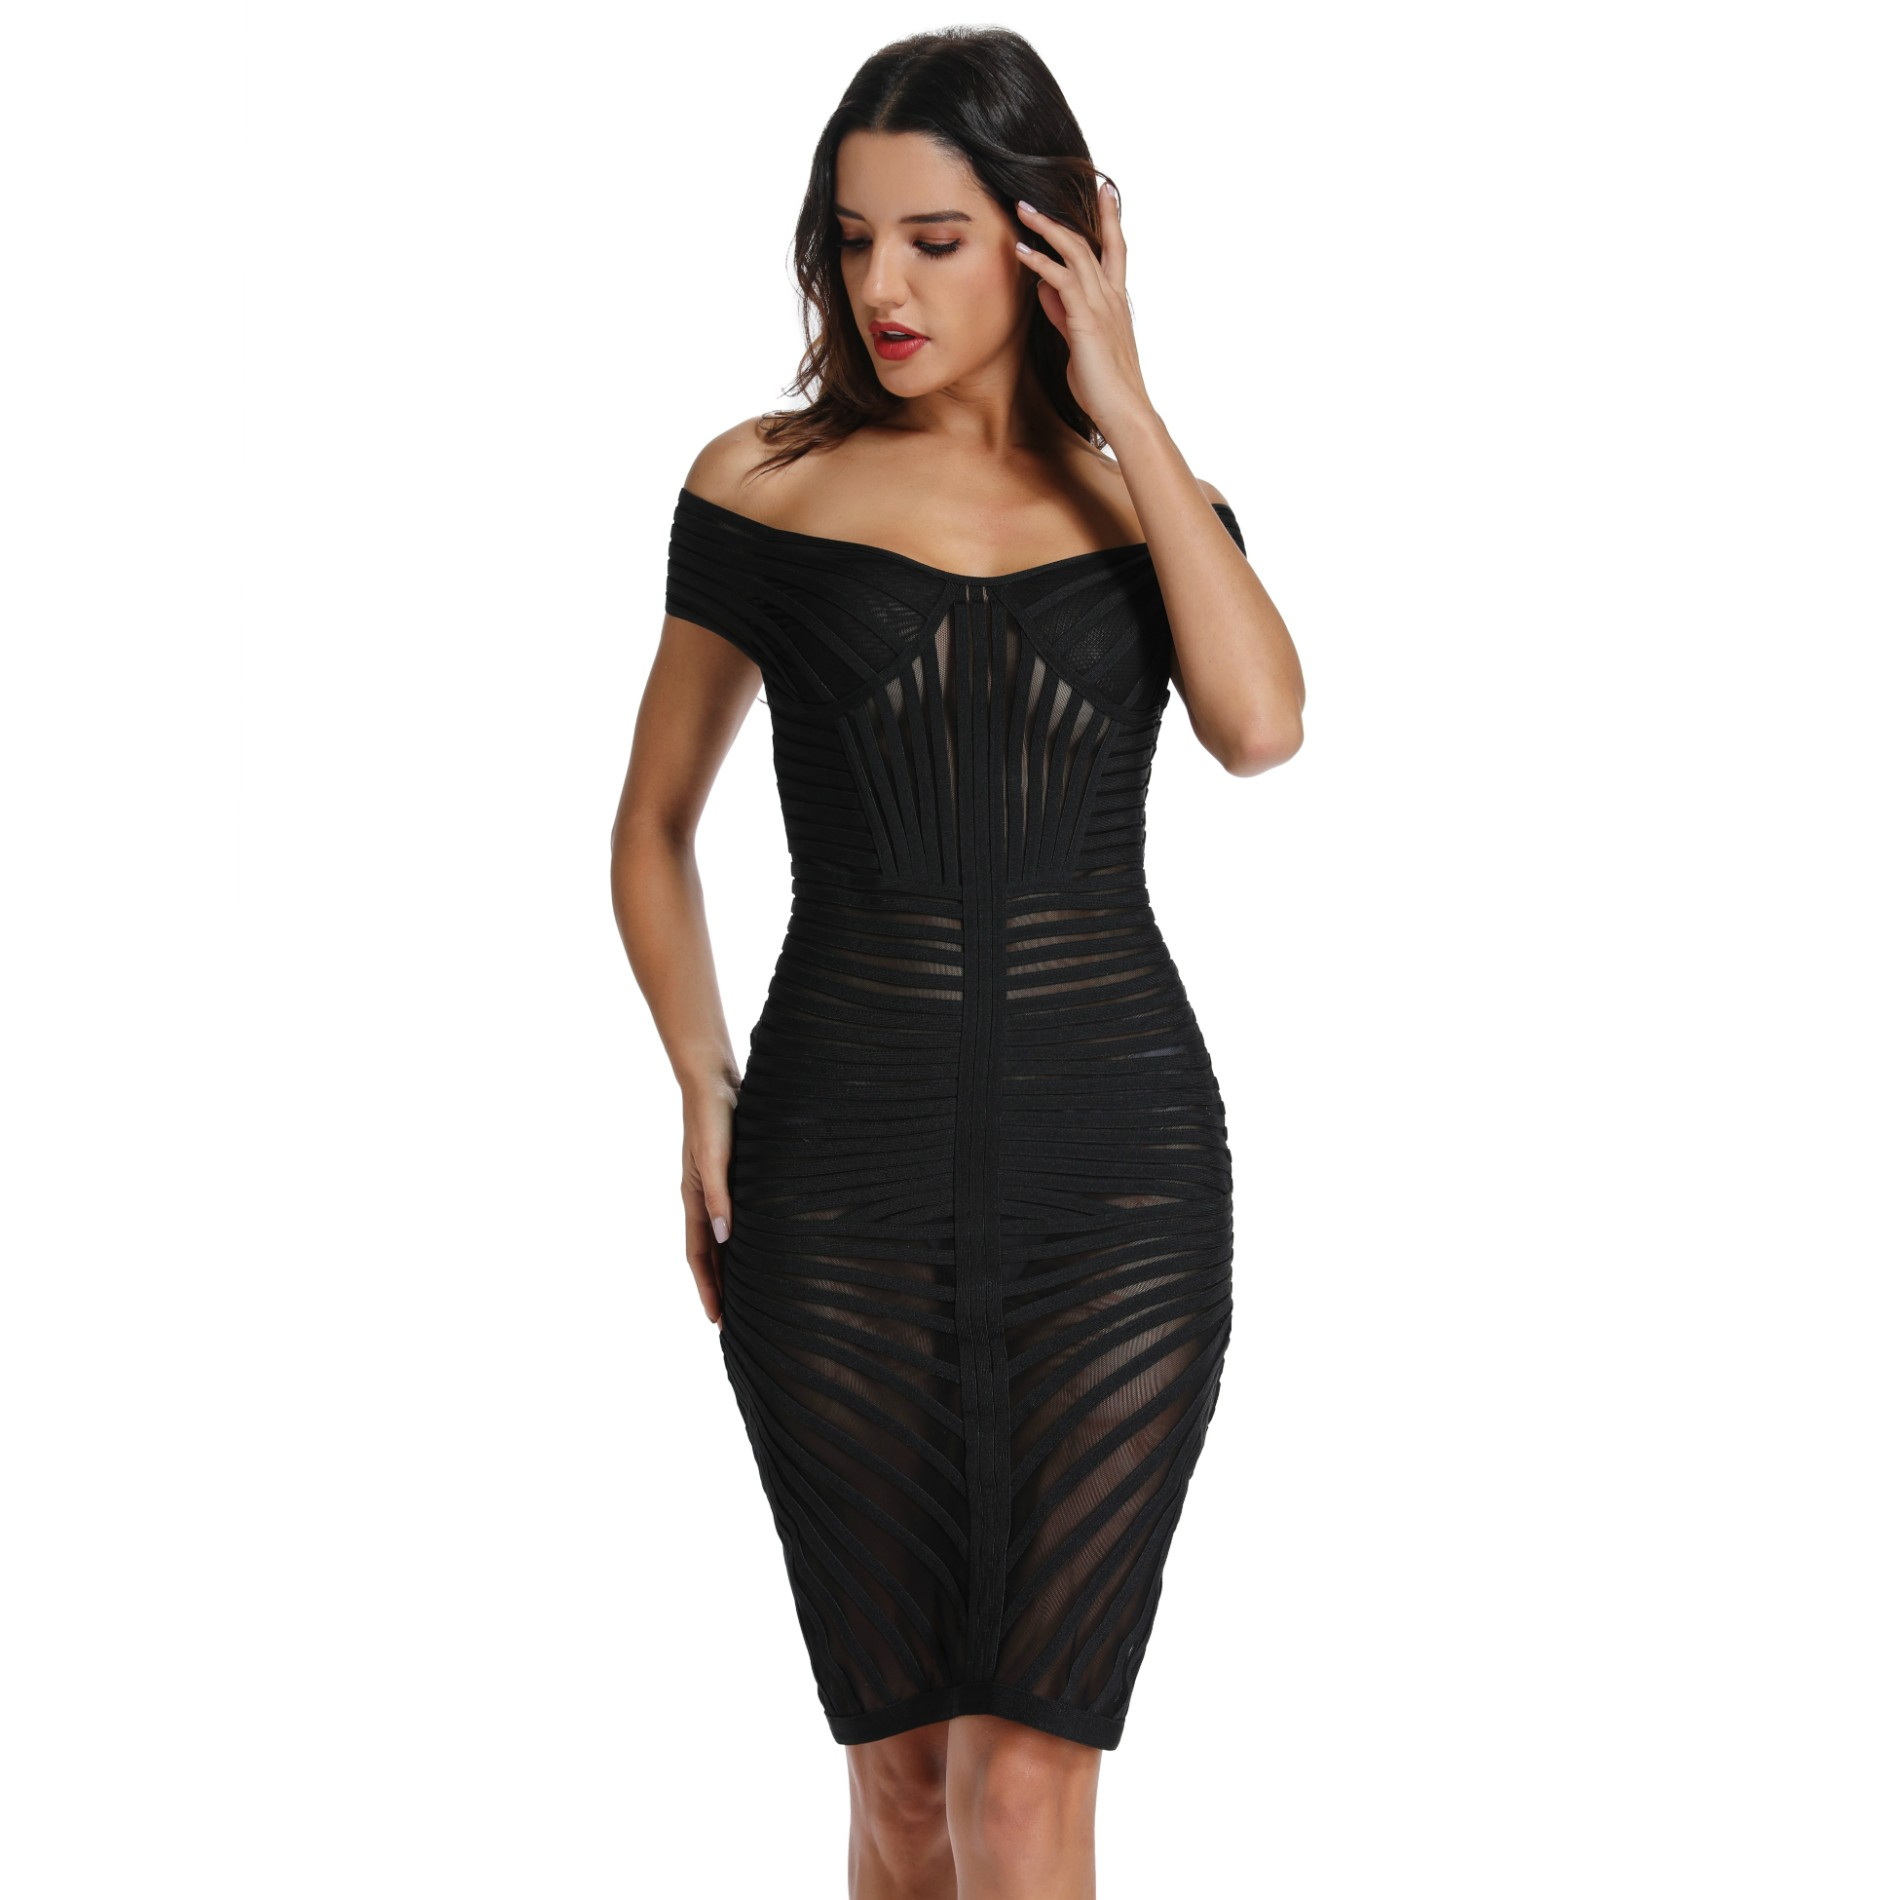 Ocstrade Bandage Dresses New Arrival 2019 Summer Black Mesh Bandage Dress Sexy Off Shoulder Bandage Women Bodycon Party Dress in Dresses from Women 39 s Clothing